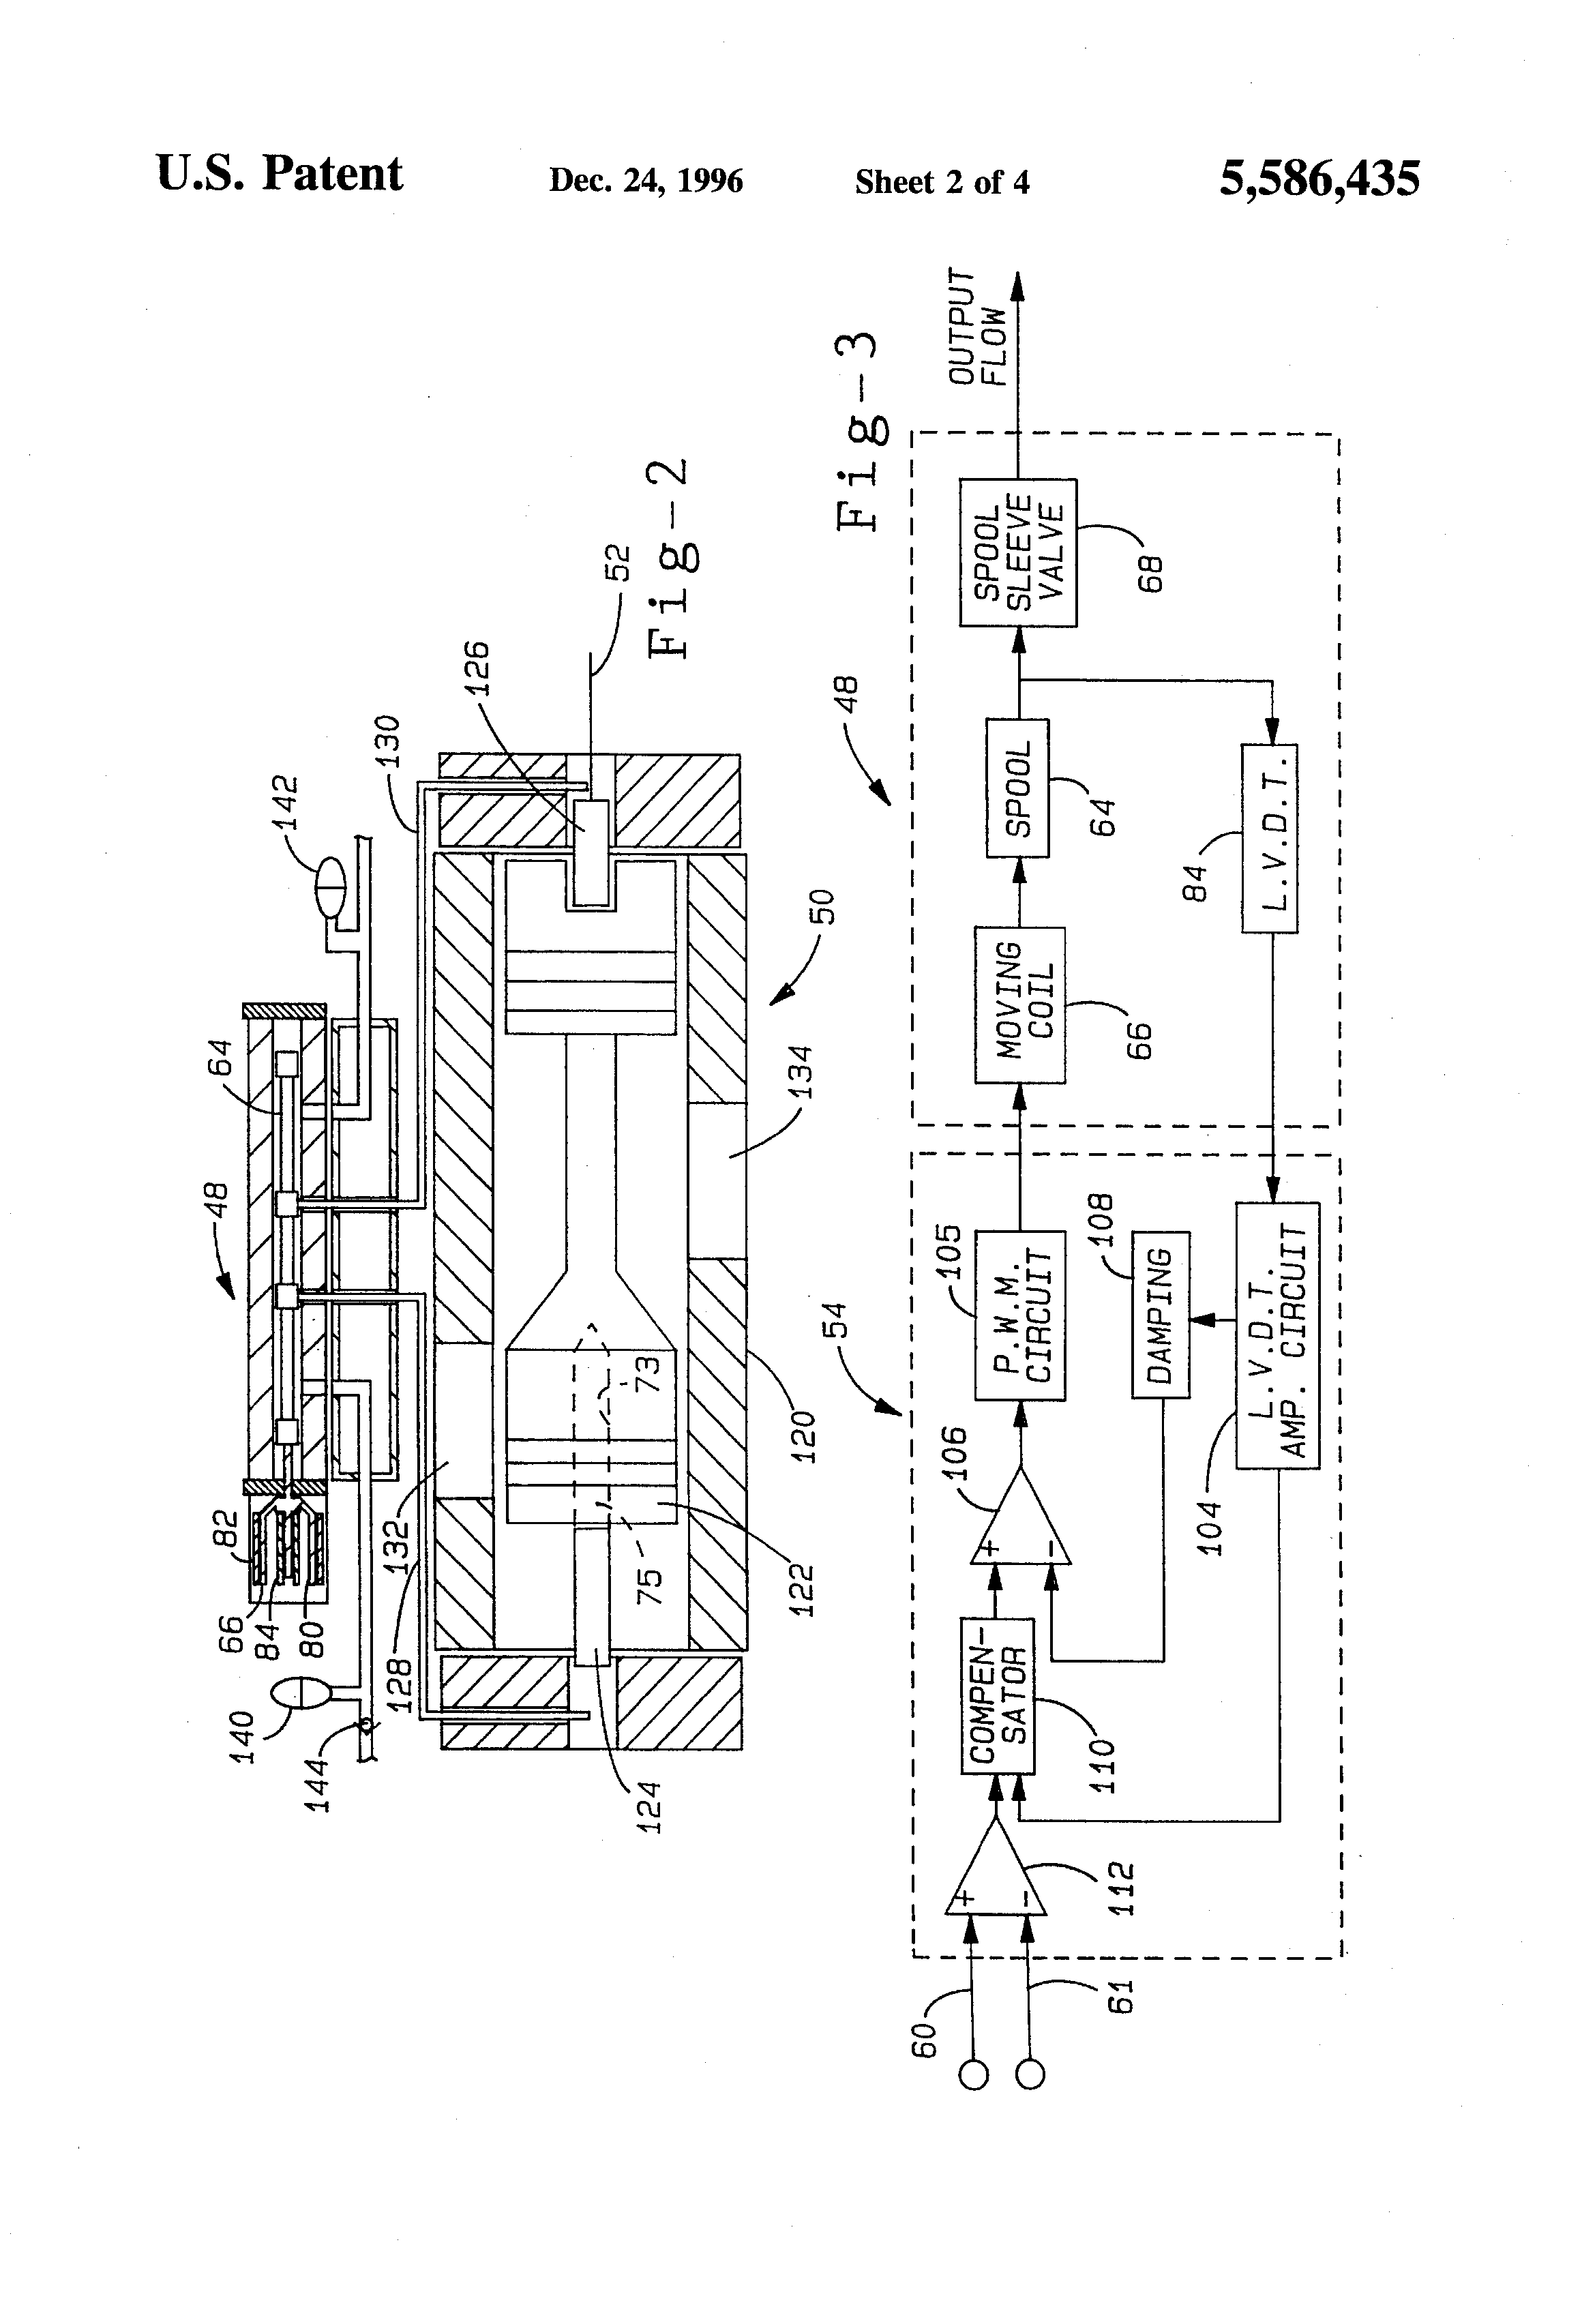 Closed Loop Hydrostatic Systems Part 2 Hydpowsysfigure1 Hydraulic Power And Controls Patent Us5586435 System